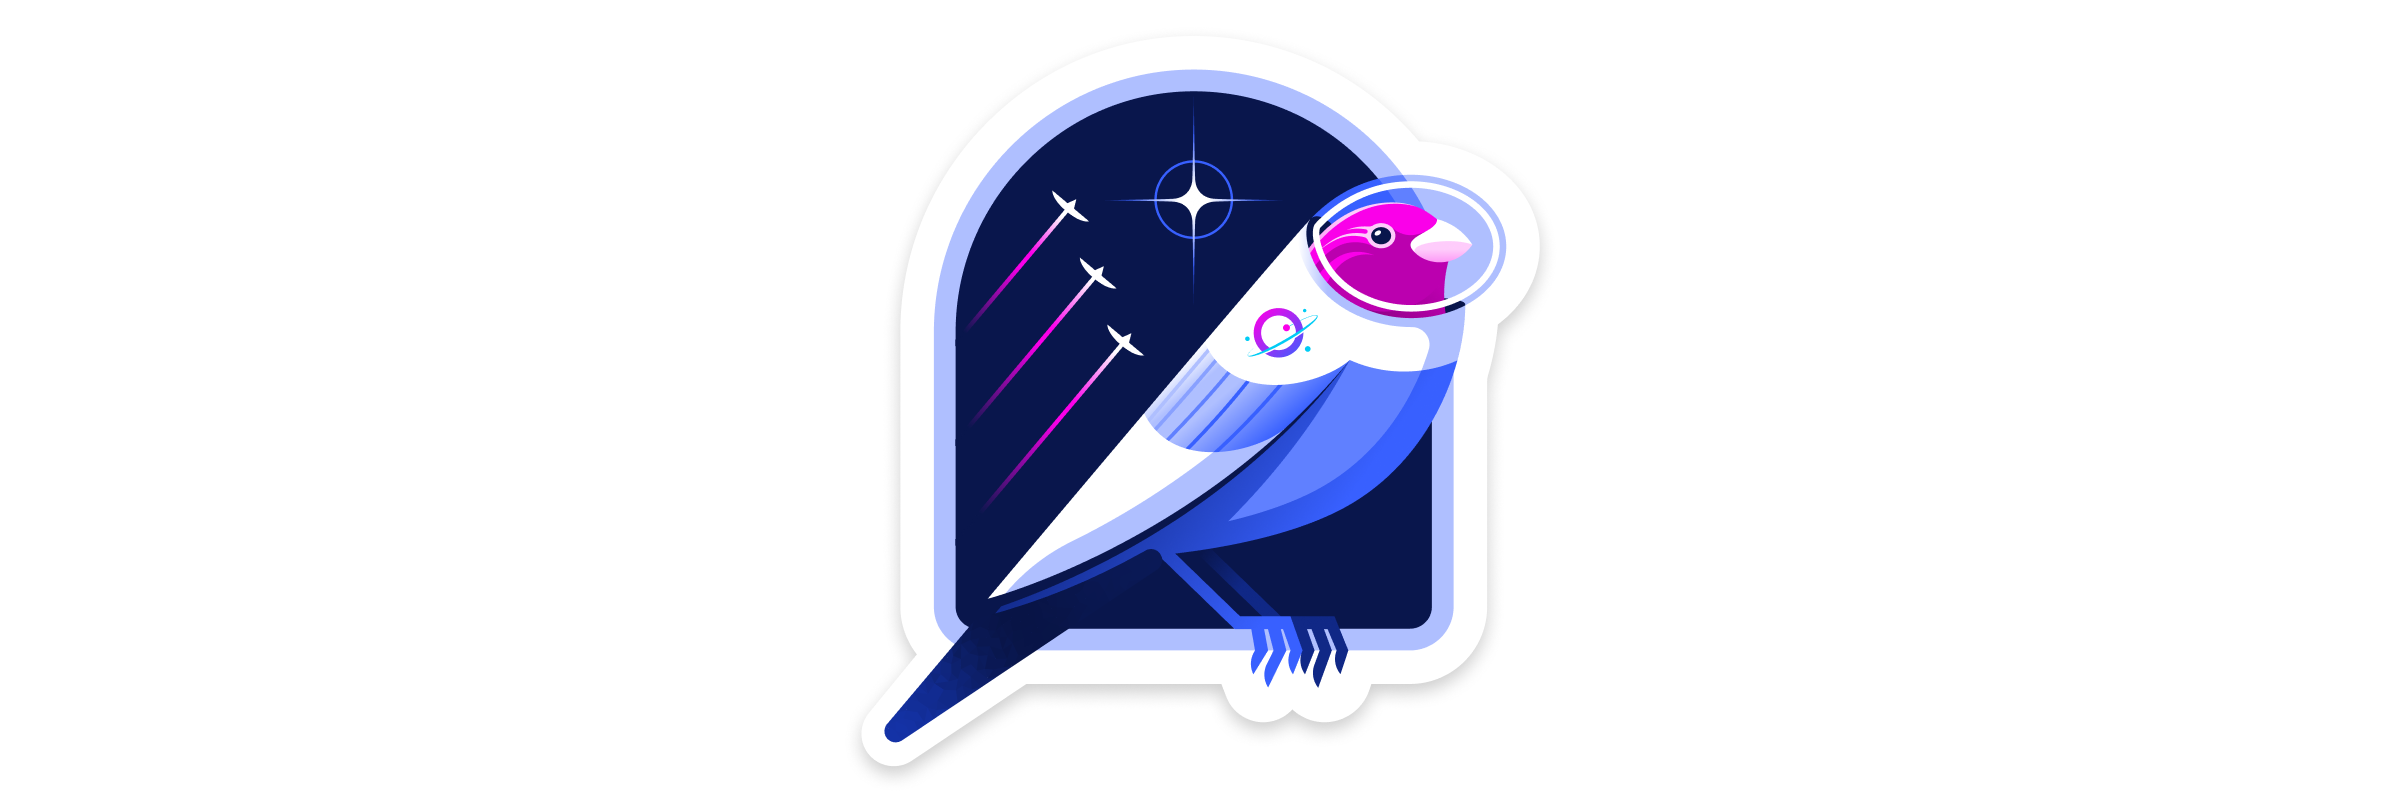 Illustration of a canary in a space suit